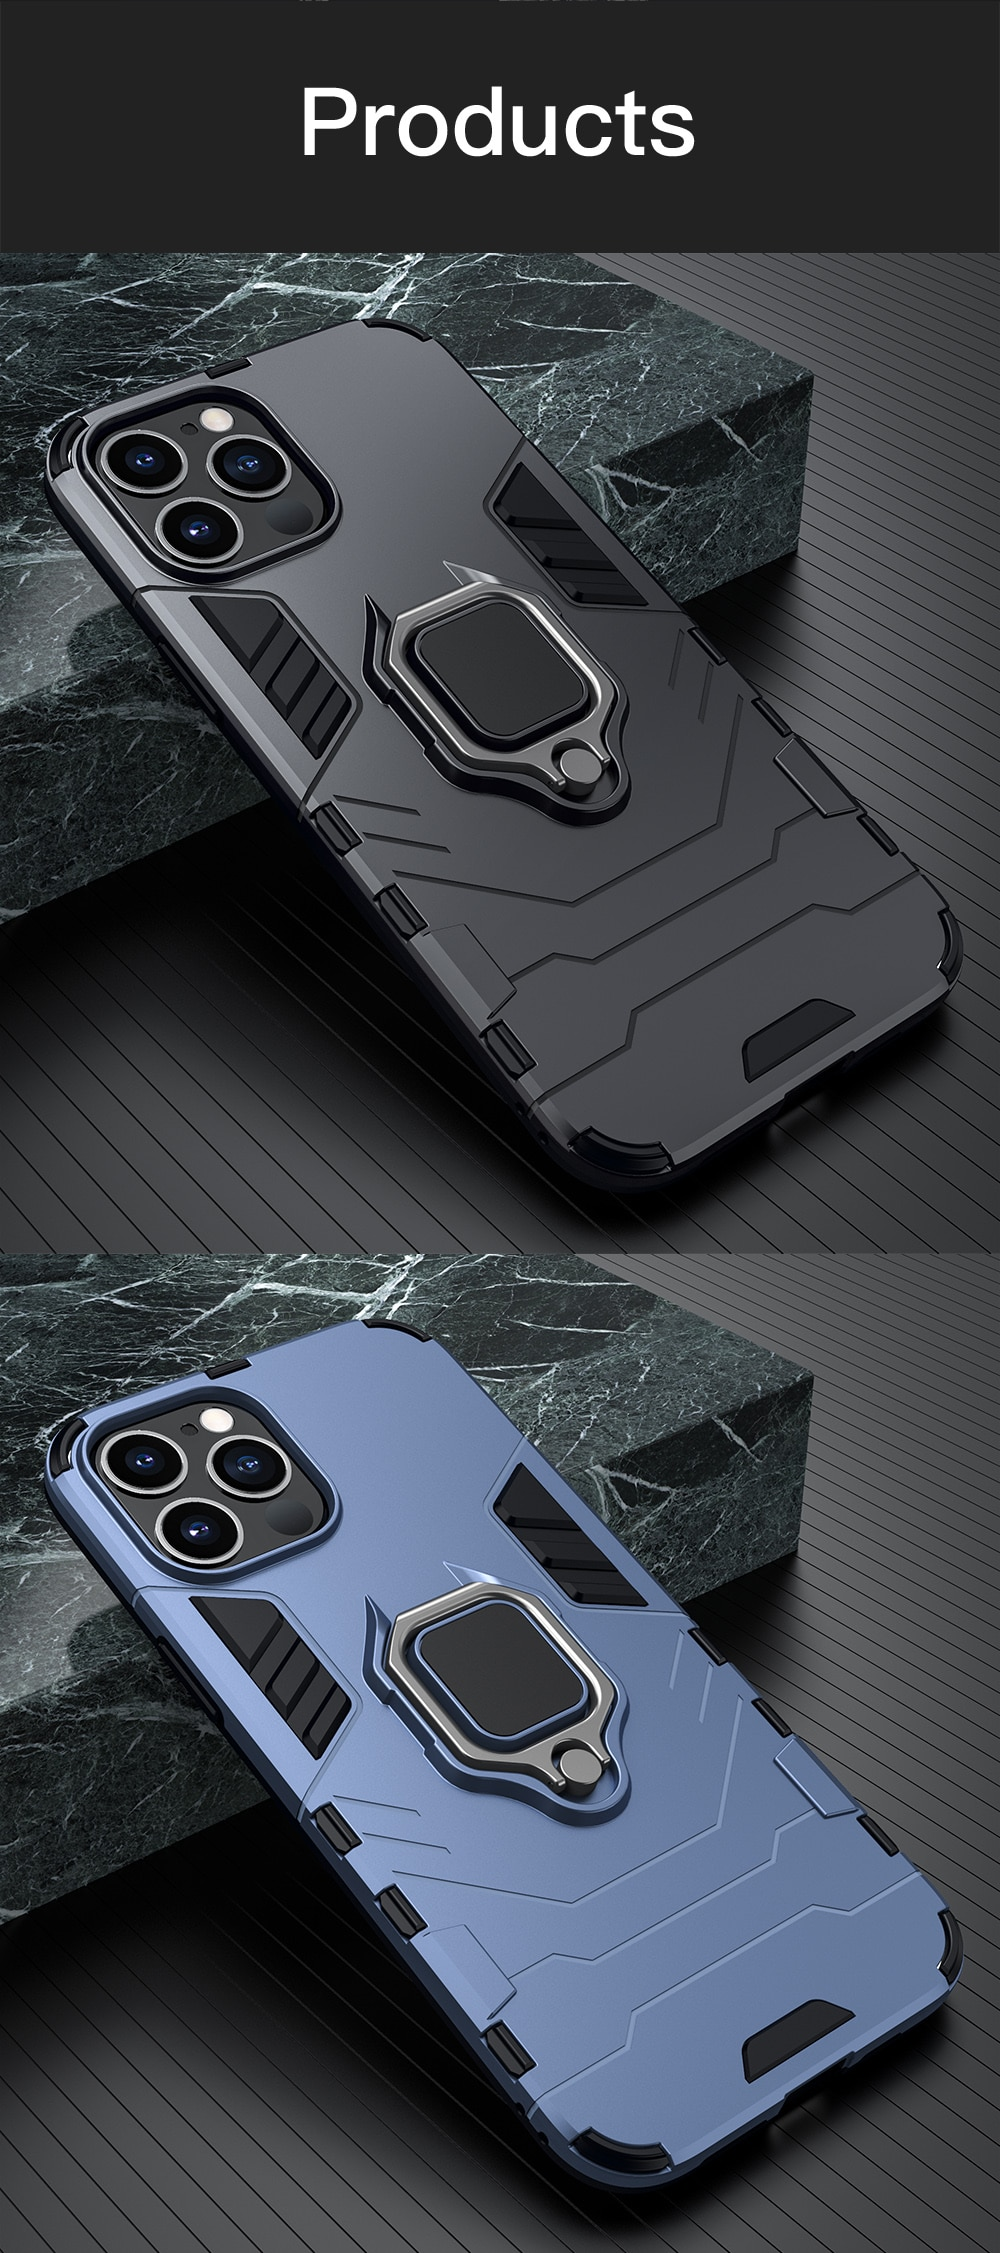 KEYSION Shockproof Armor Case for iPhone 12 Pro Max 12 Mini Ring Stand Back Cover for iPhone 11 Pro max XS XR 8 7 6 Plus SE 2020